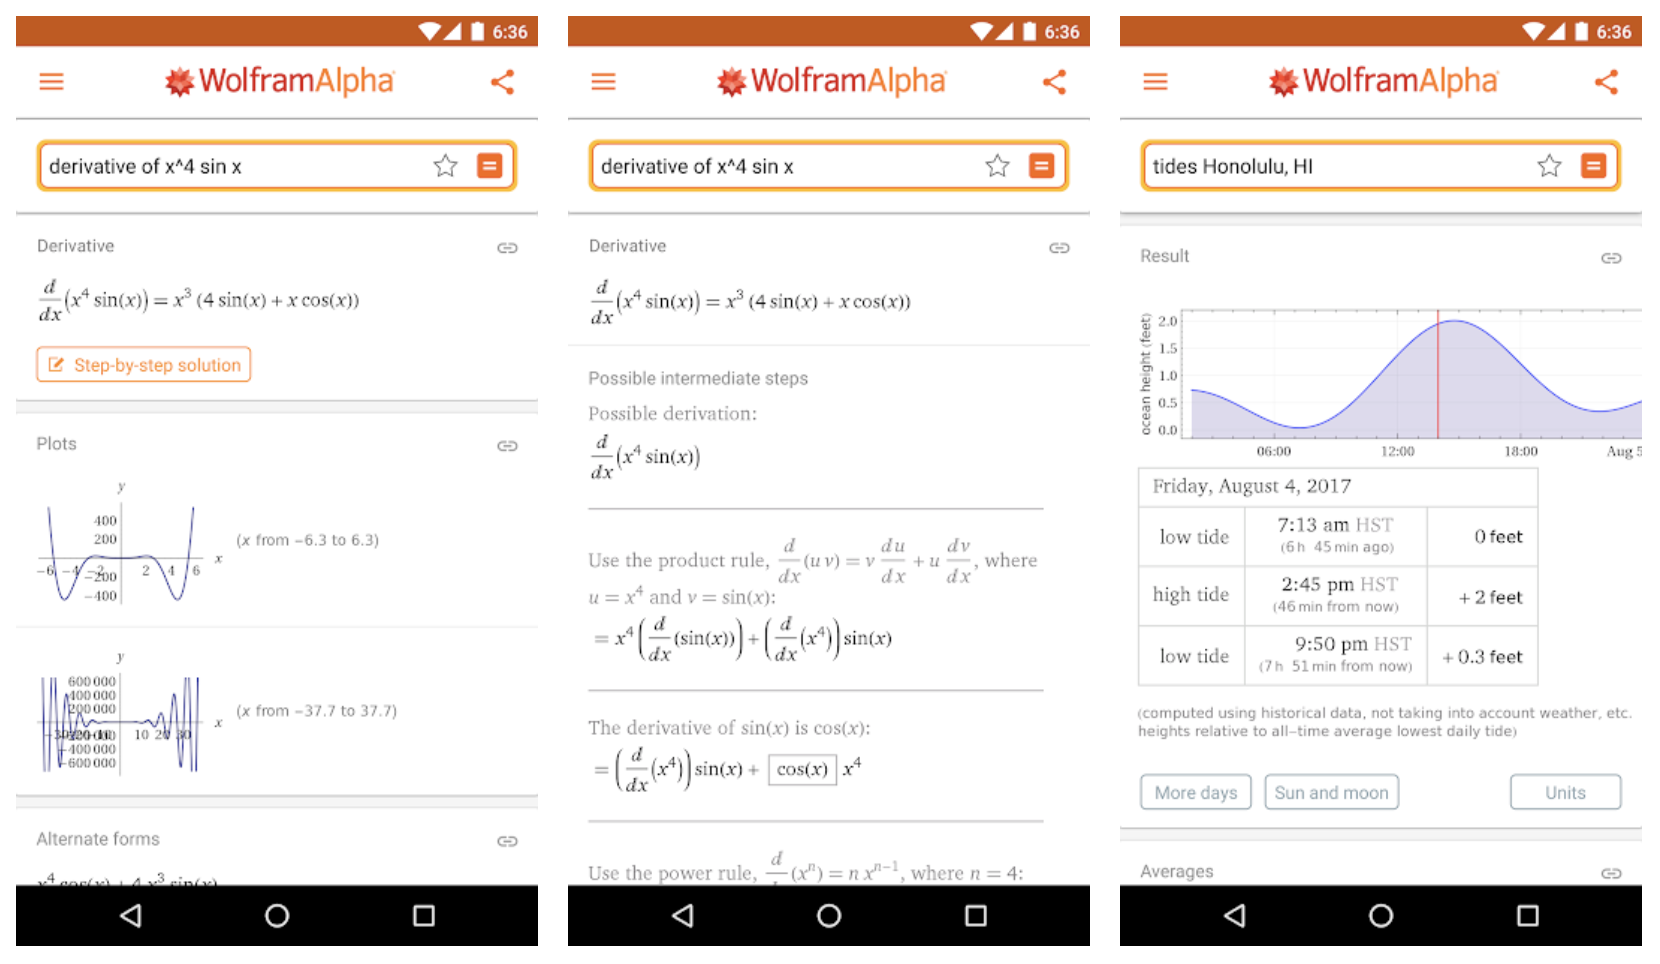 WolframAlpha calculator app screenshot